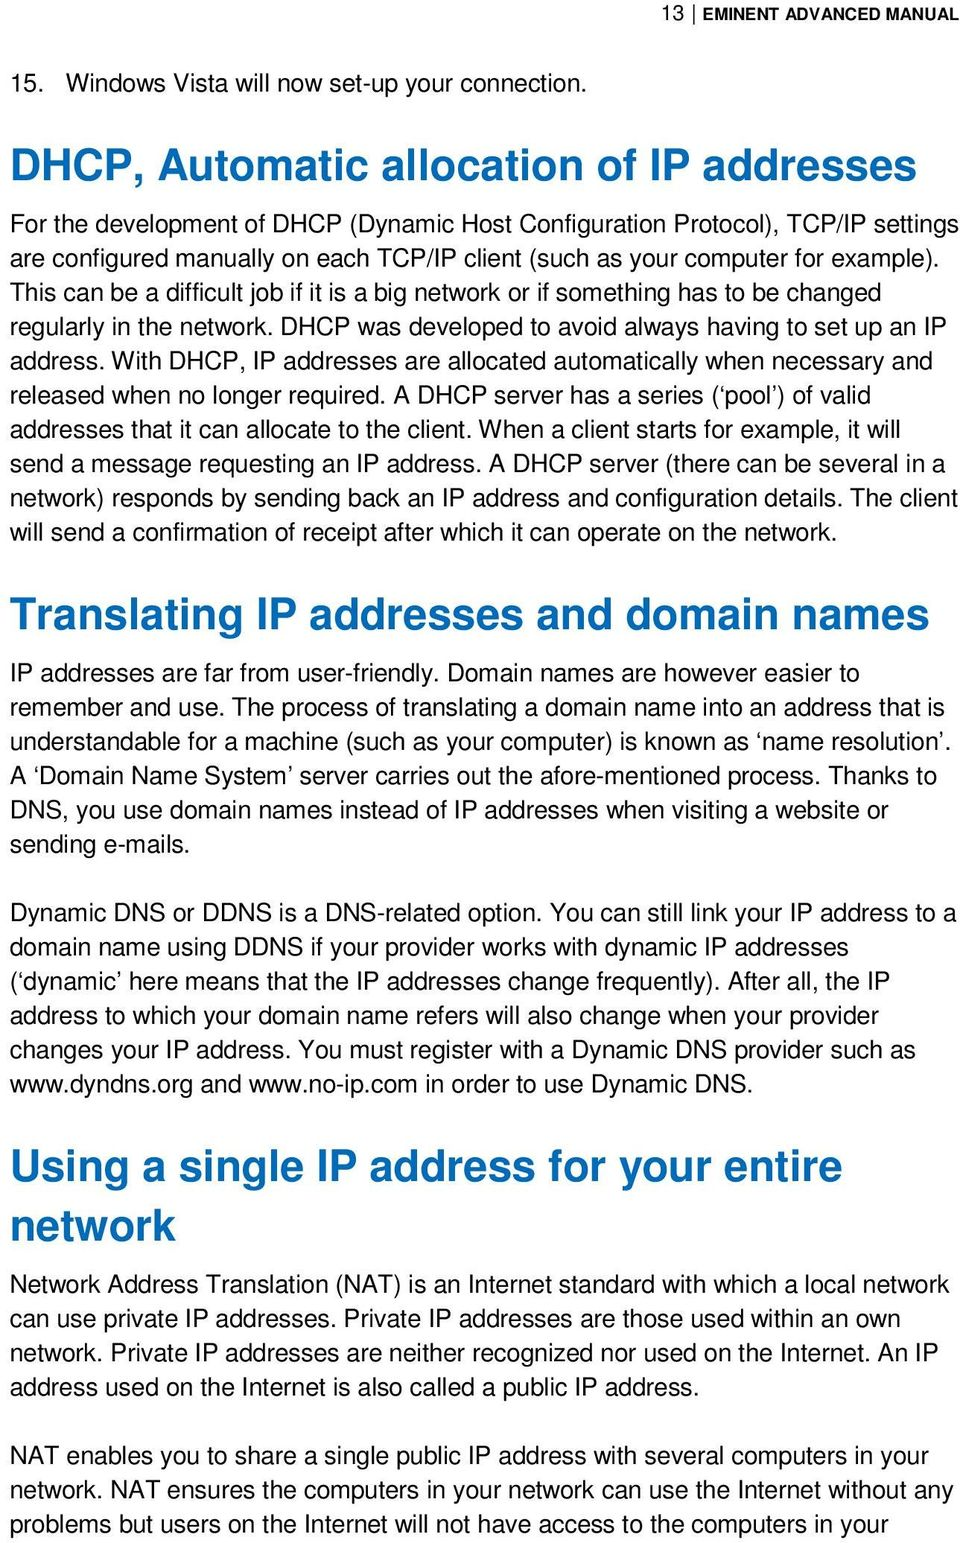 example). This can be a difficult job if it is a big network or if something has to be changed regularly in the network. DHCP was developed to avoid always having to set up an IP address.